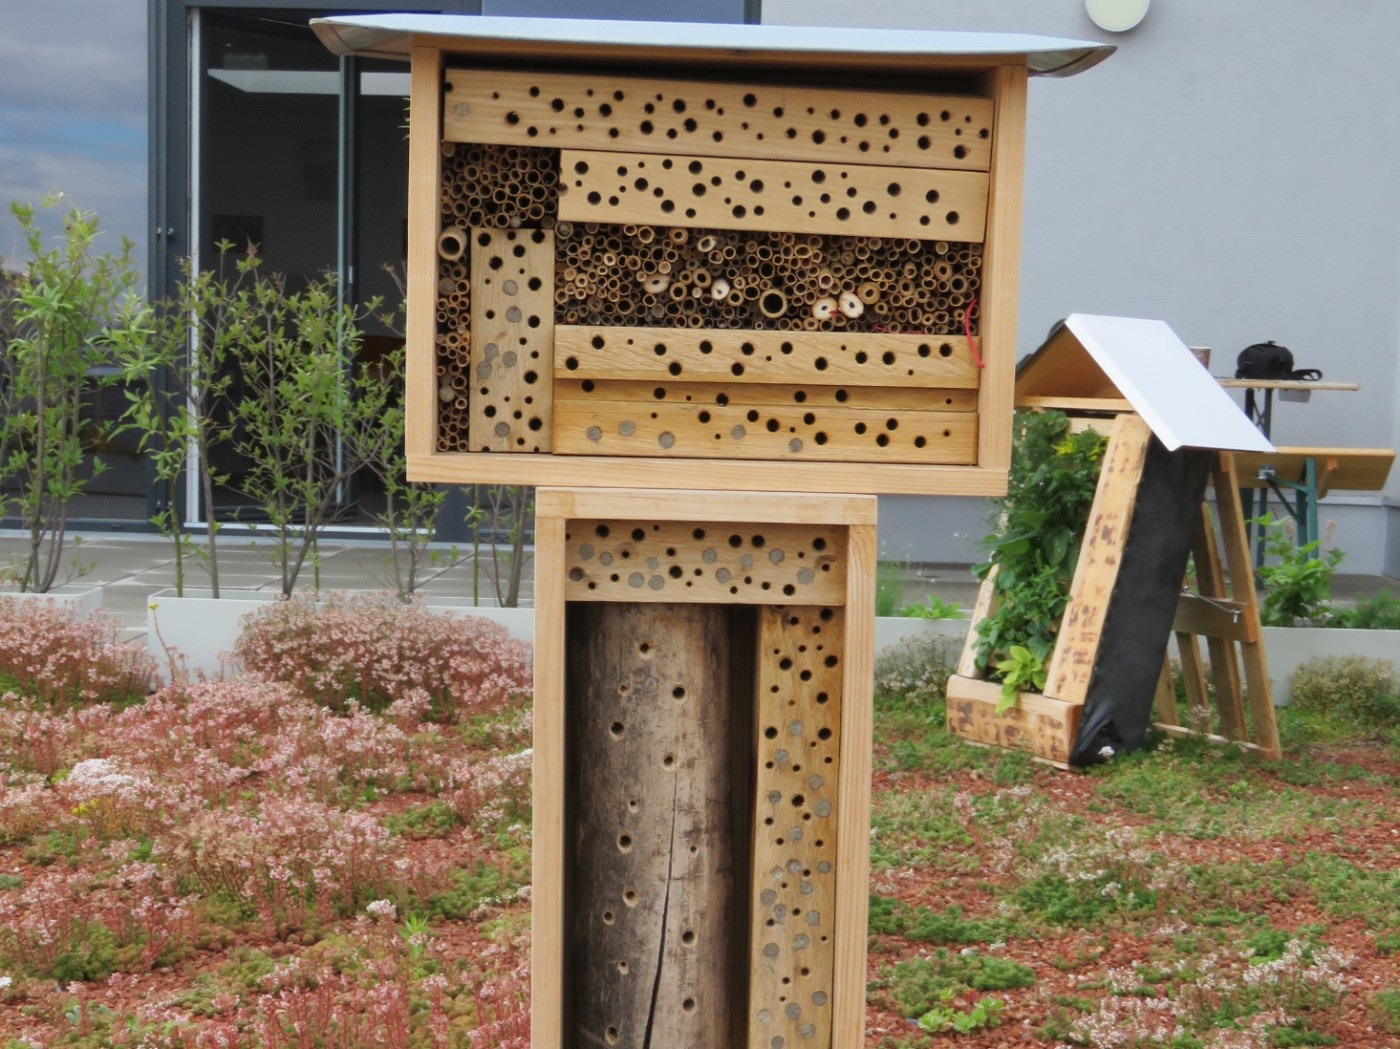 Wildbienenhaus